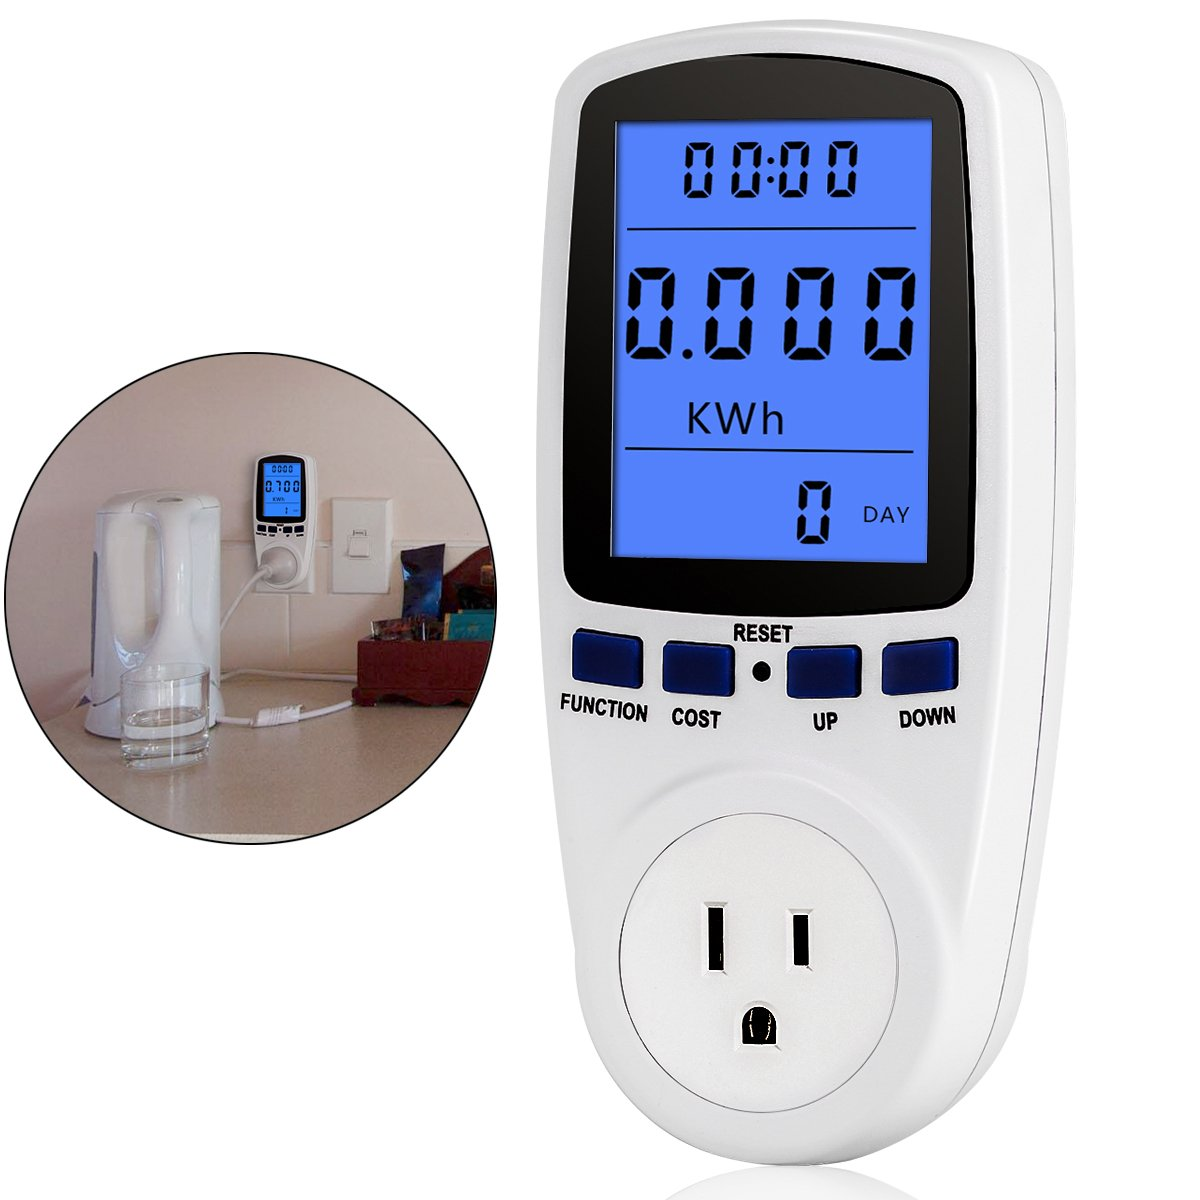 Power Meter Plug with Display,Digital Power Saving Energy Monitor Watt Amp Volt KWh Meter Electricity Analyzer with LCD Display